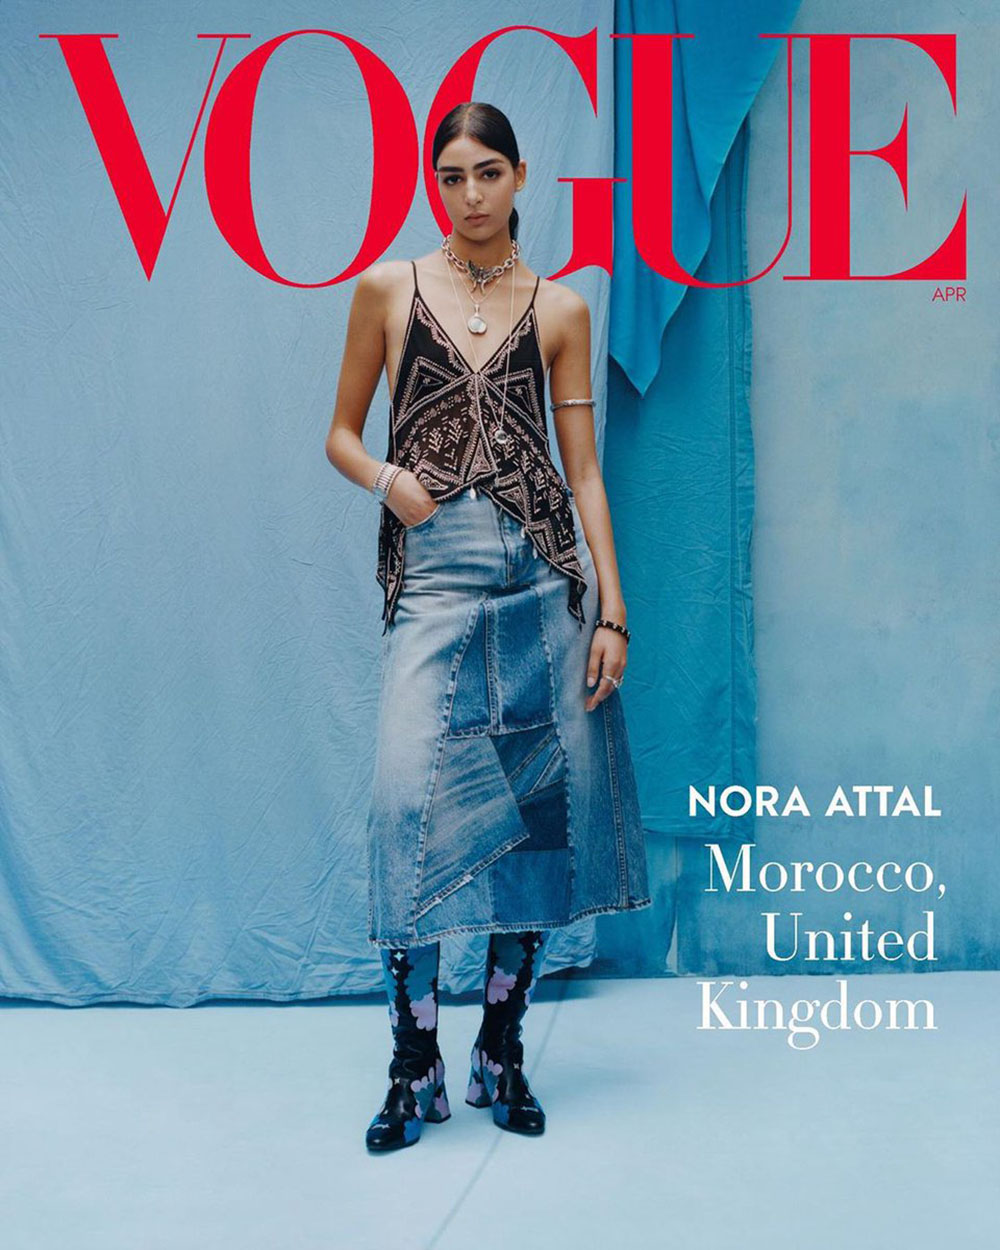 Models from around the world cover Vogue US April 2020 by Tyler Mitchell